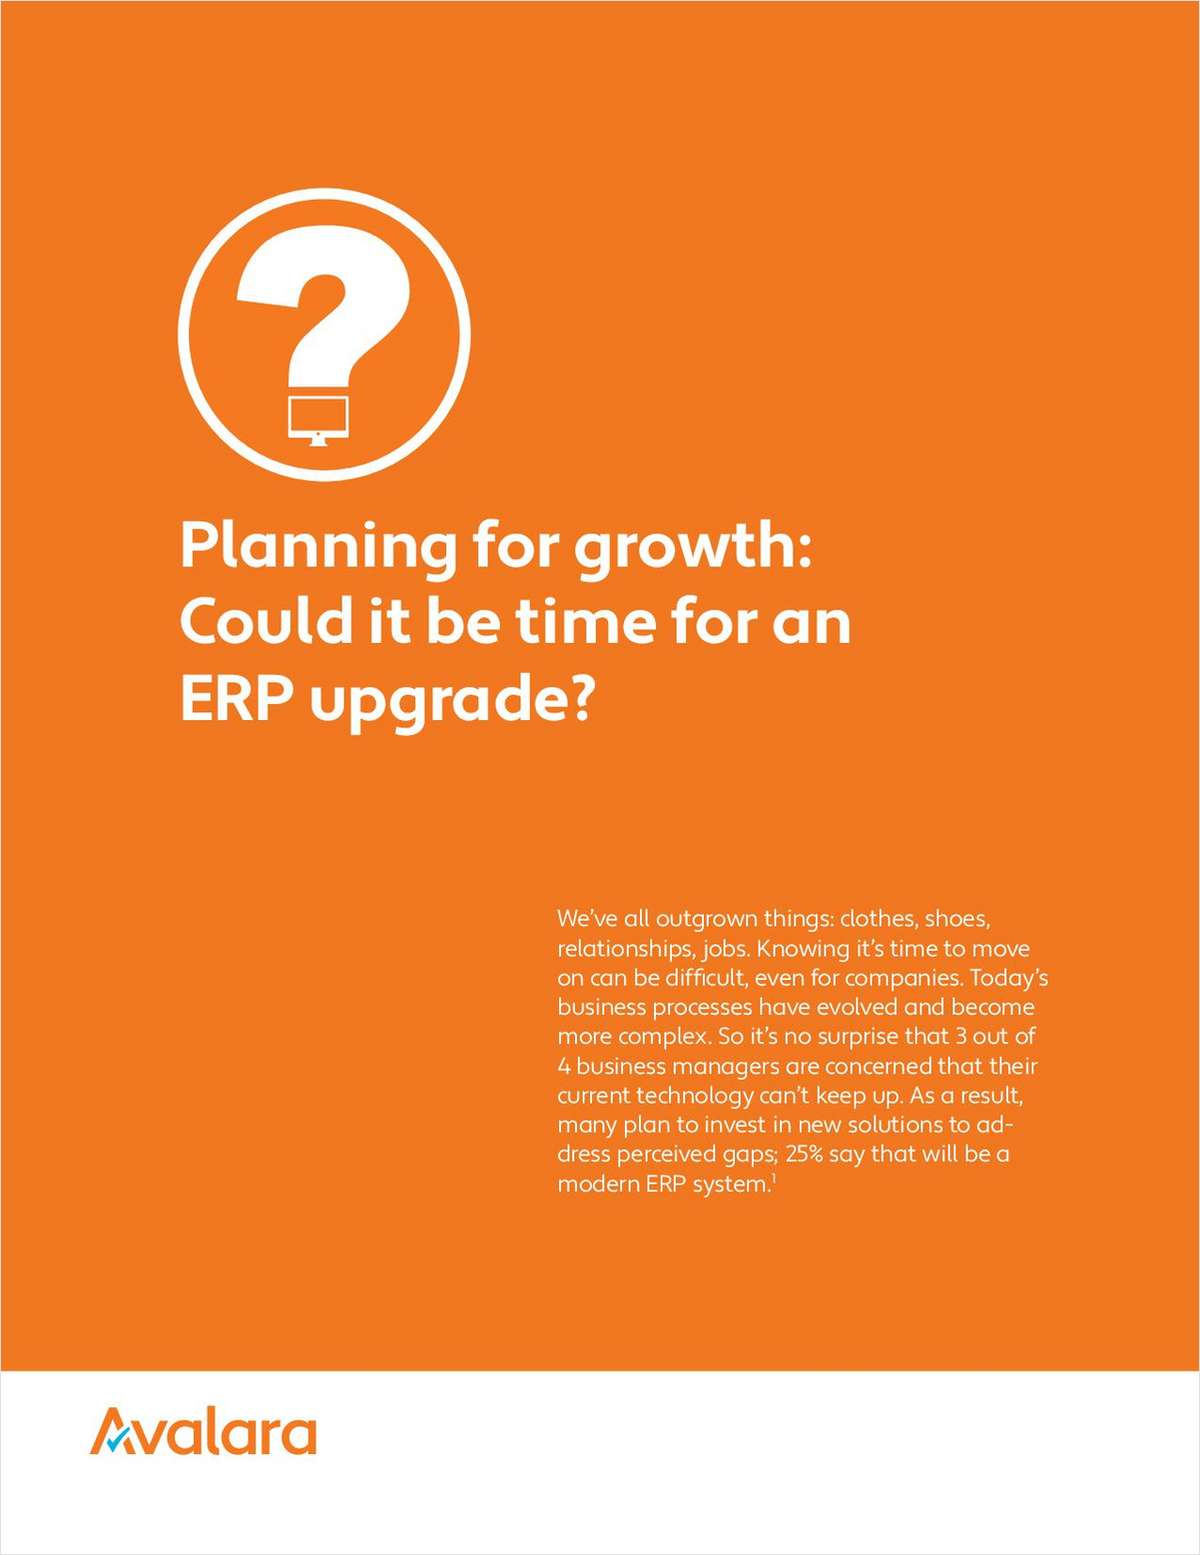 Planning for an ERP Upgrade? 5 Guidelines to Plan for Growth